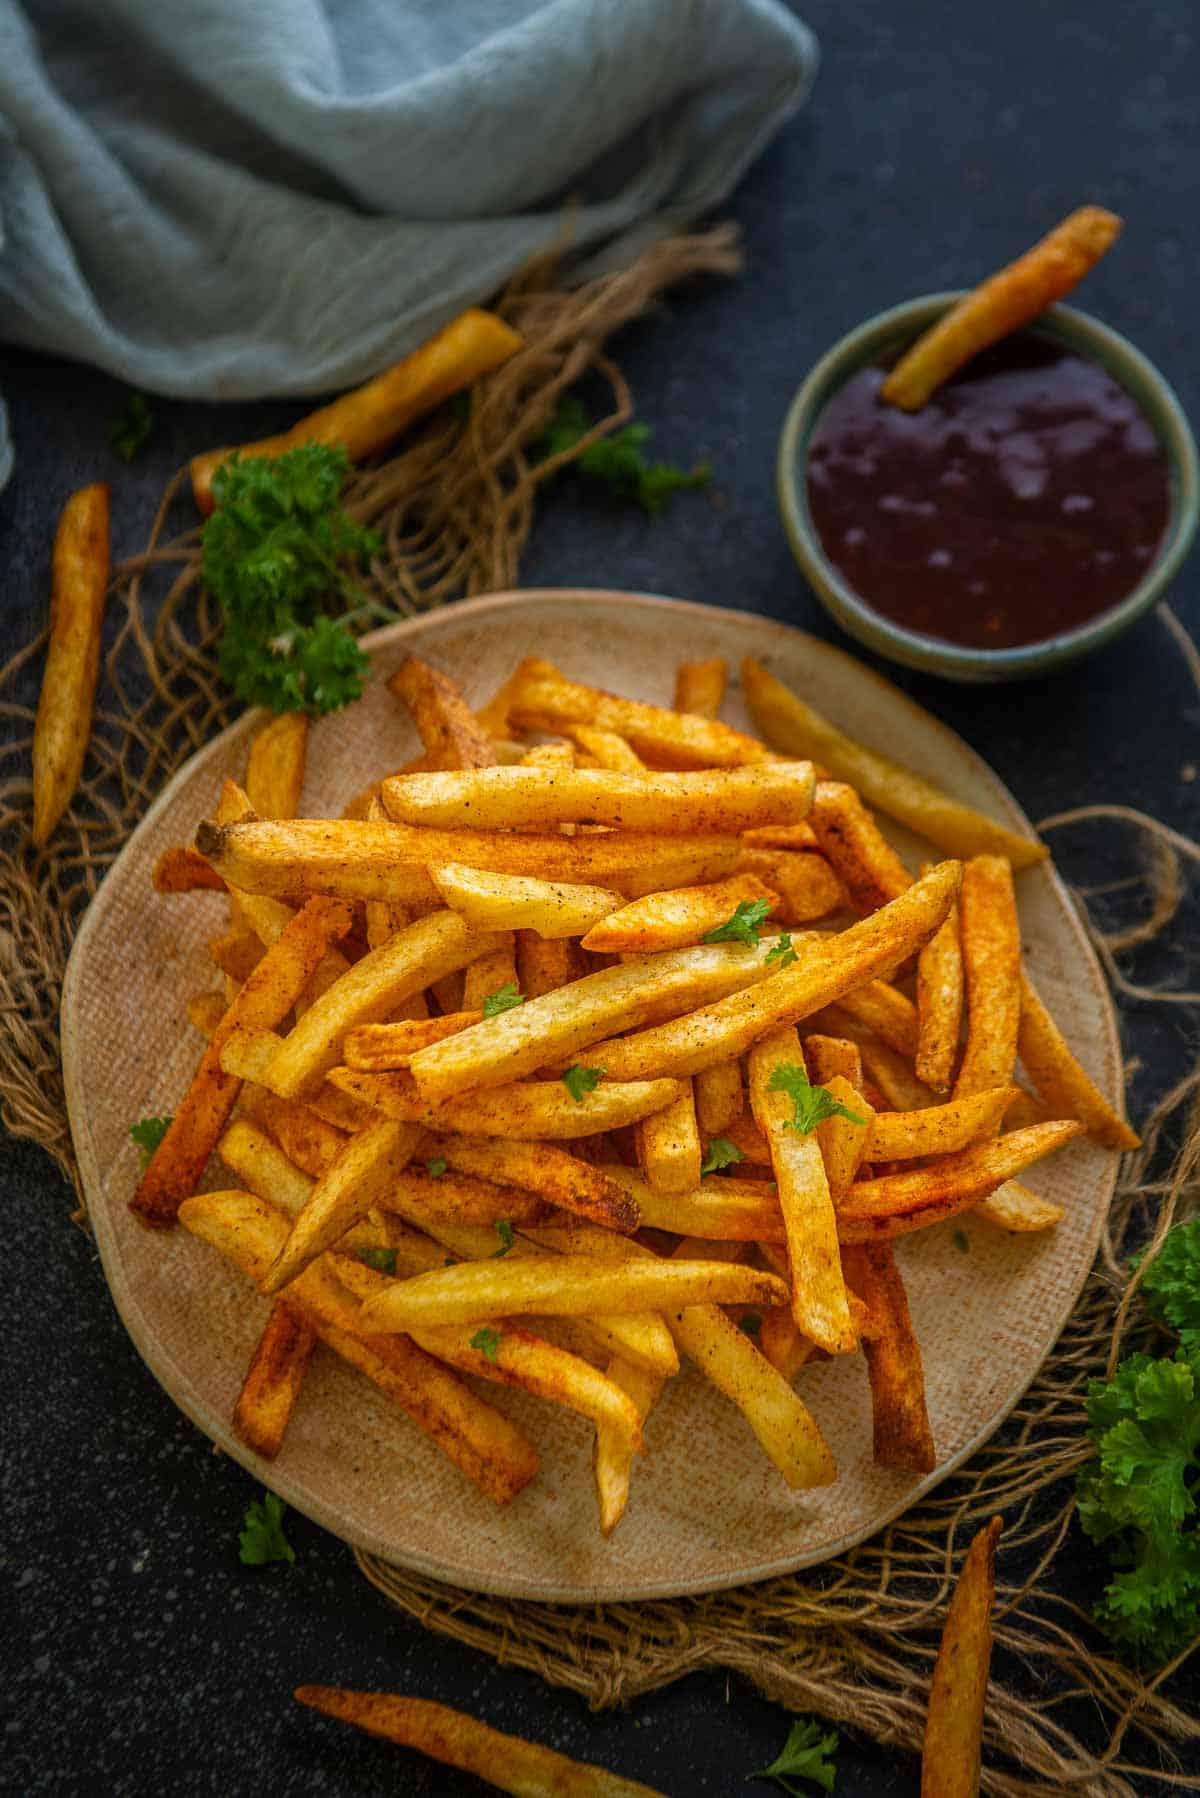 Air fryer frozen french fries served on a plate.